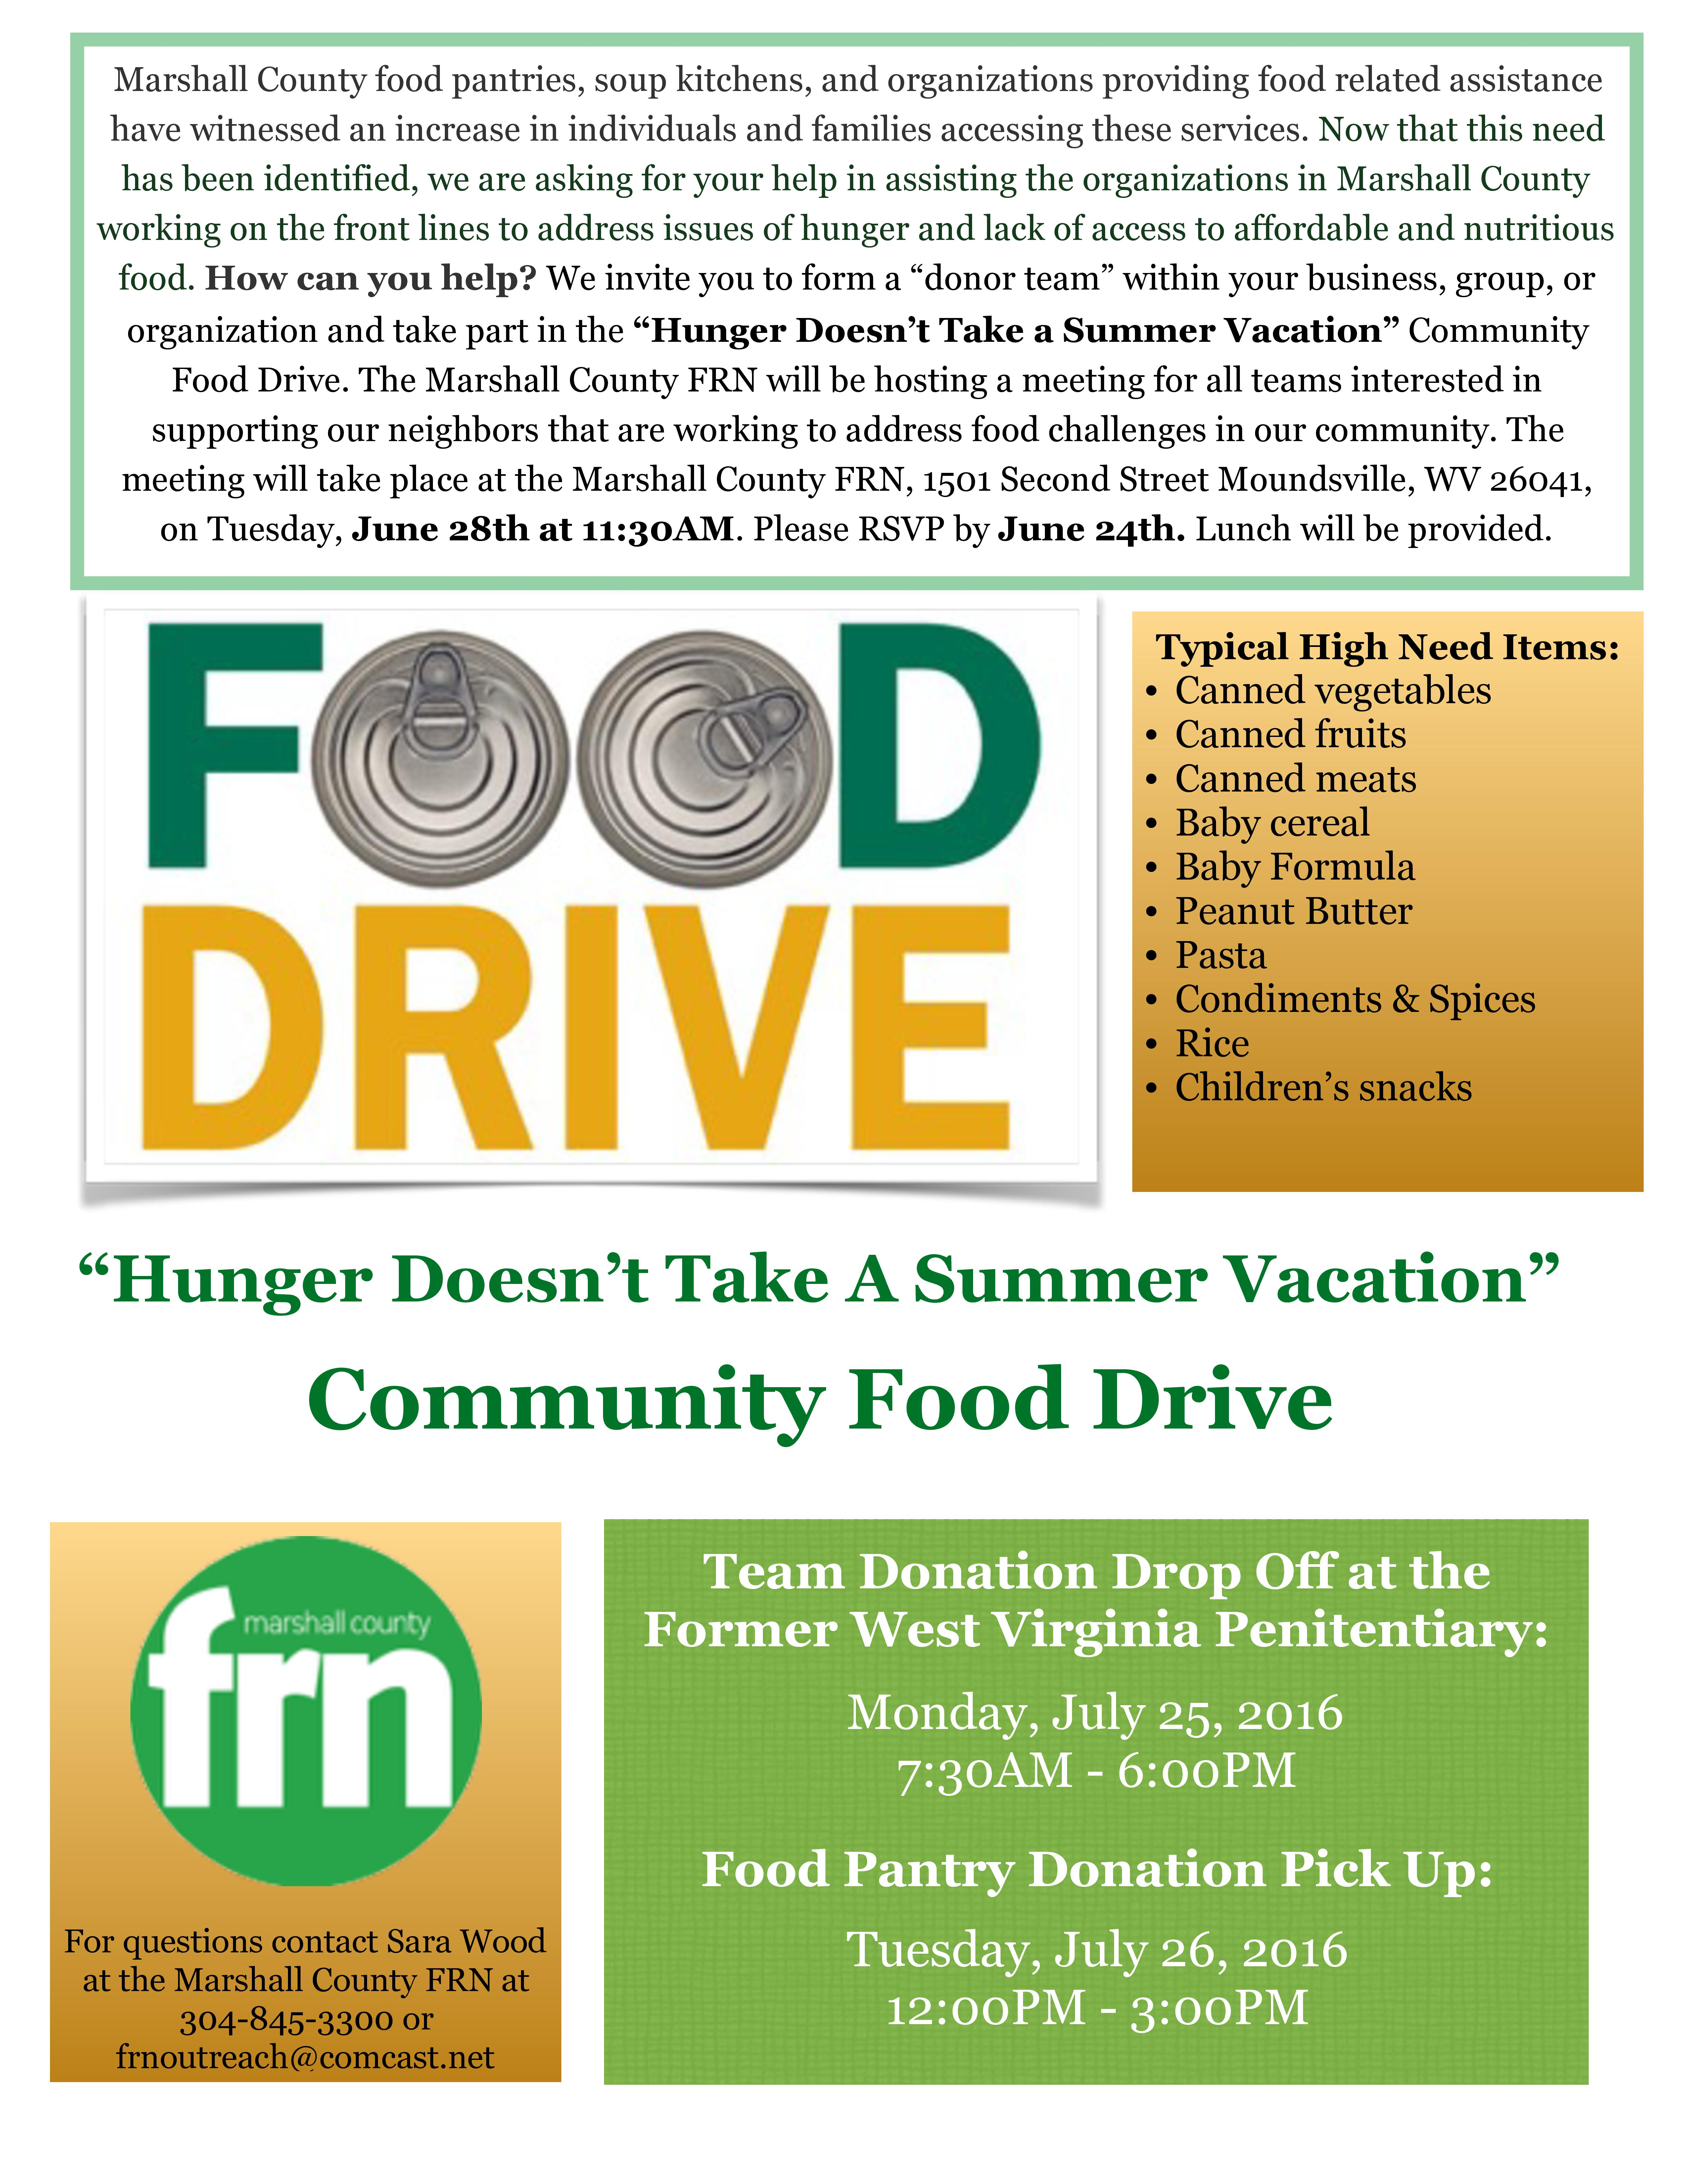 Marshall County FRN Organizing Community Food Drive | Marshall ...